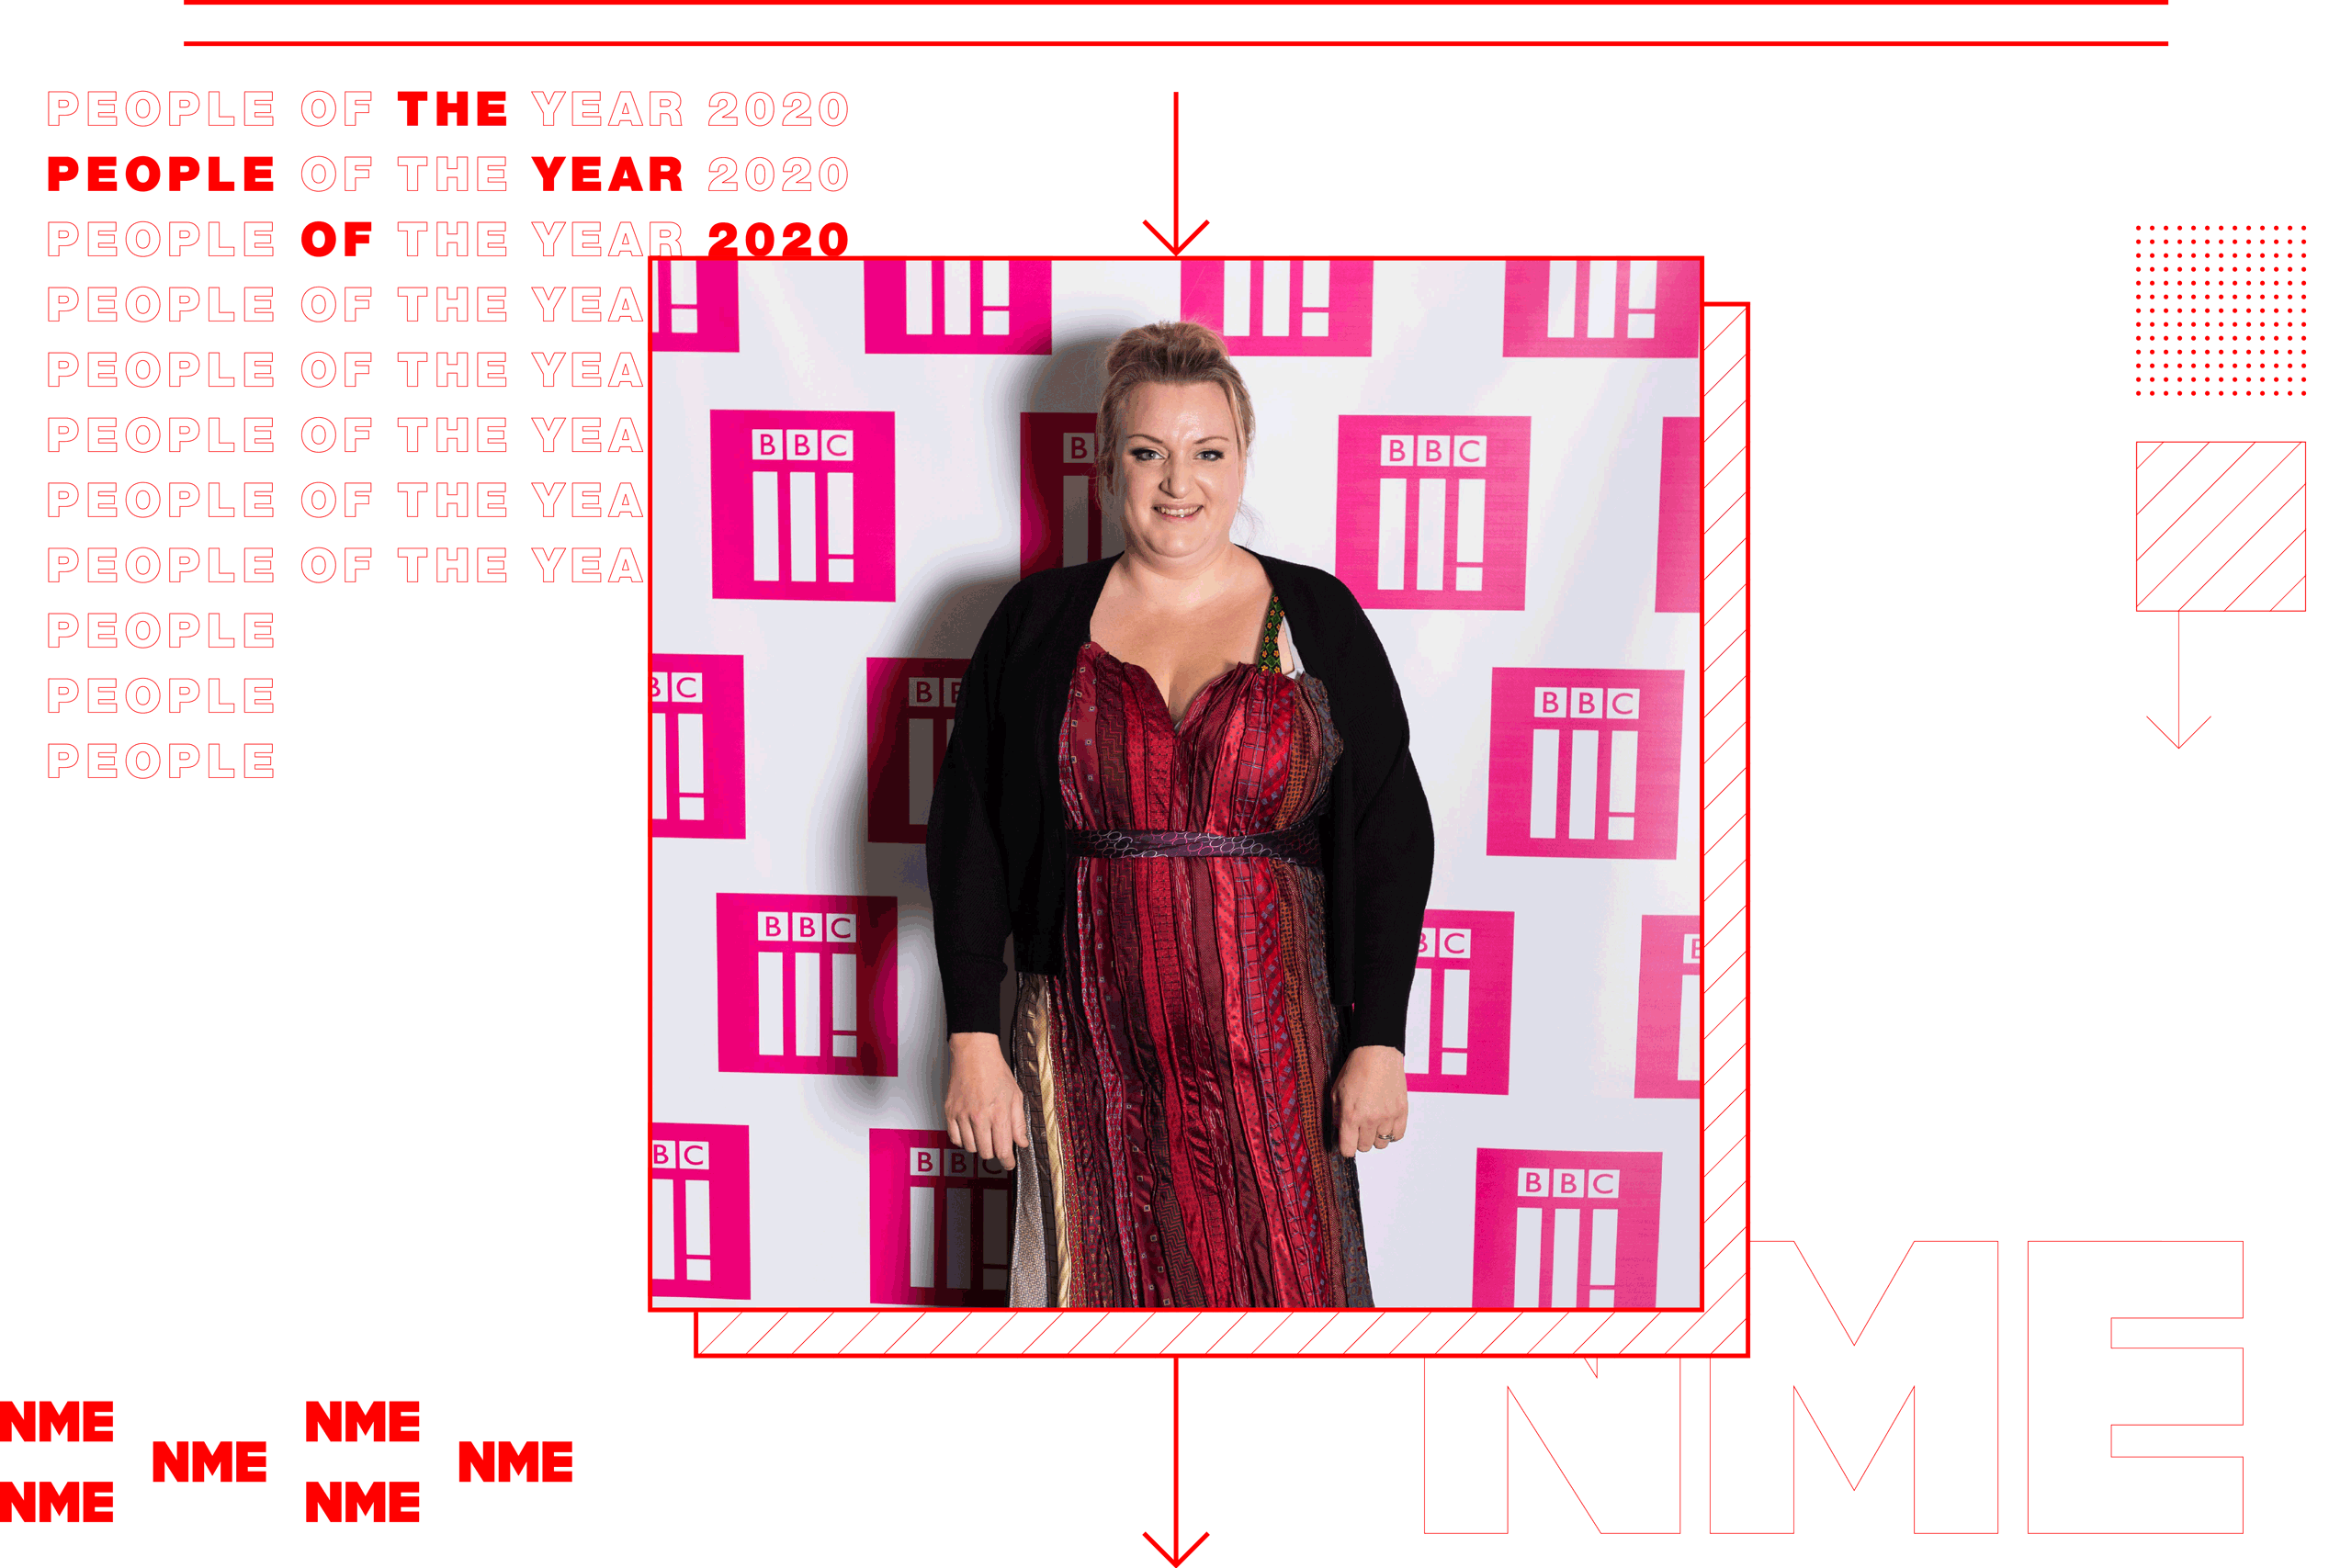 nme people of the year 2020 daisy may cooper